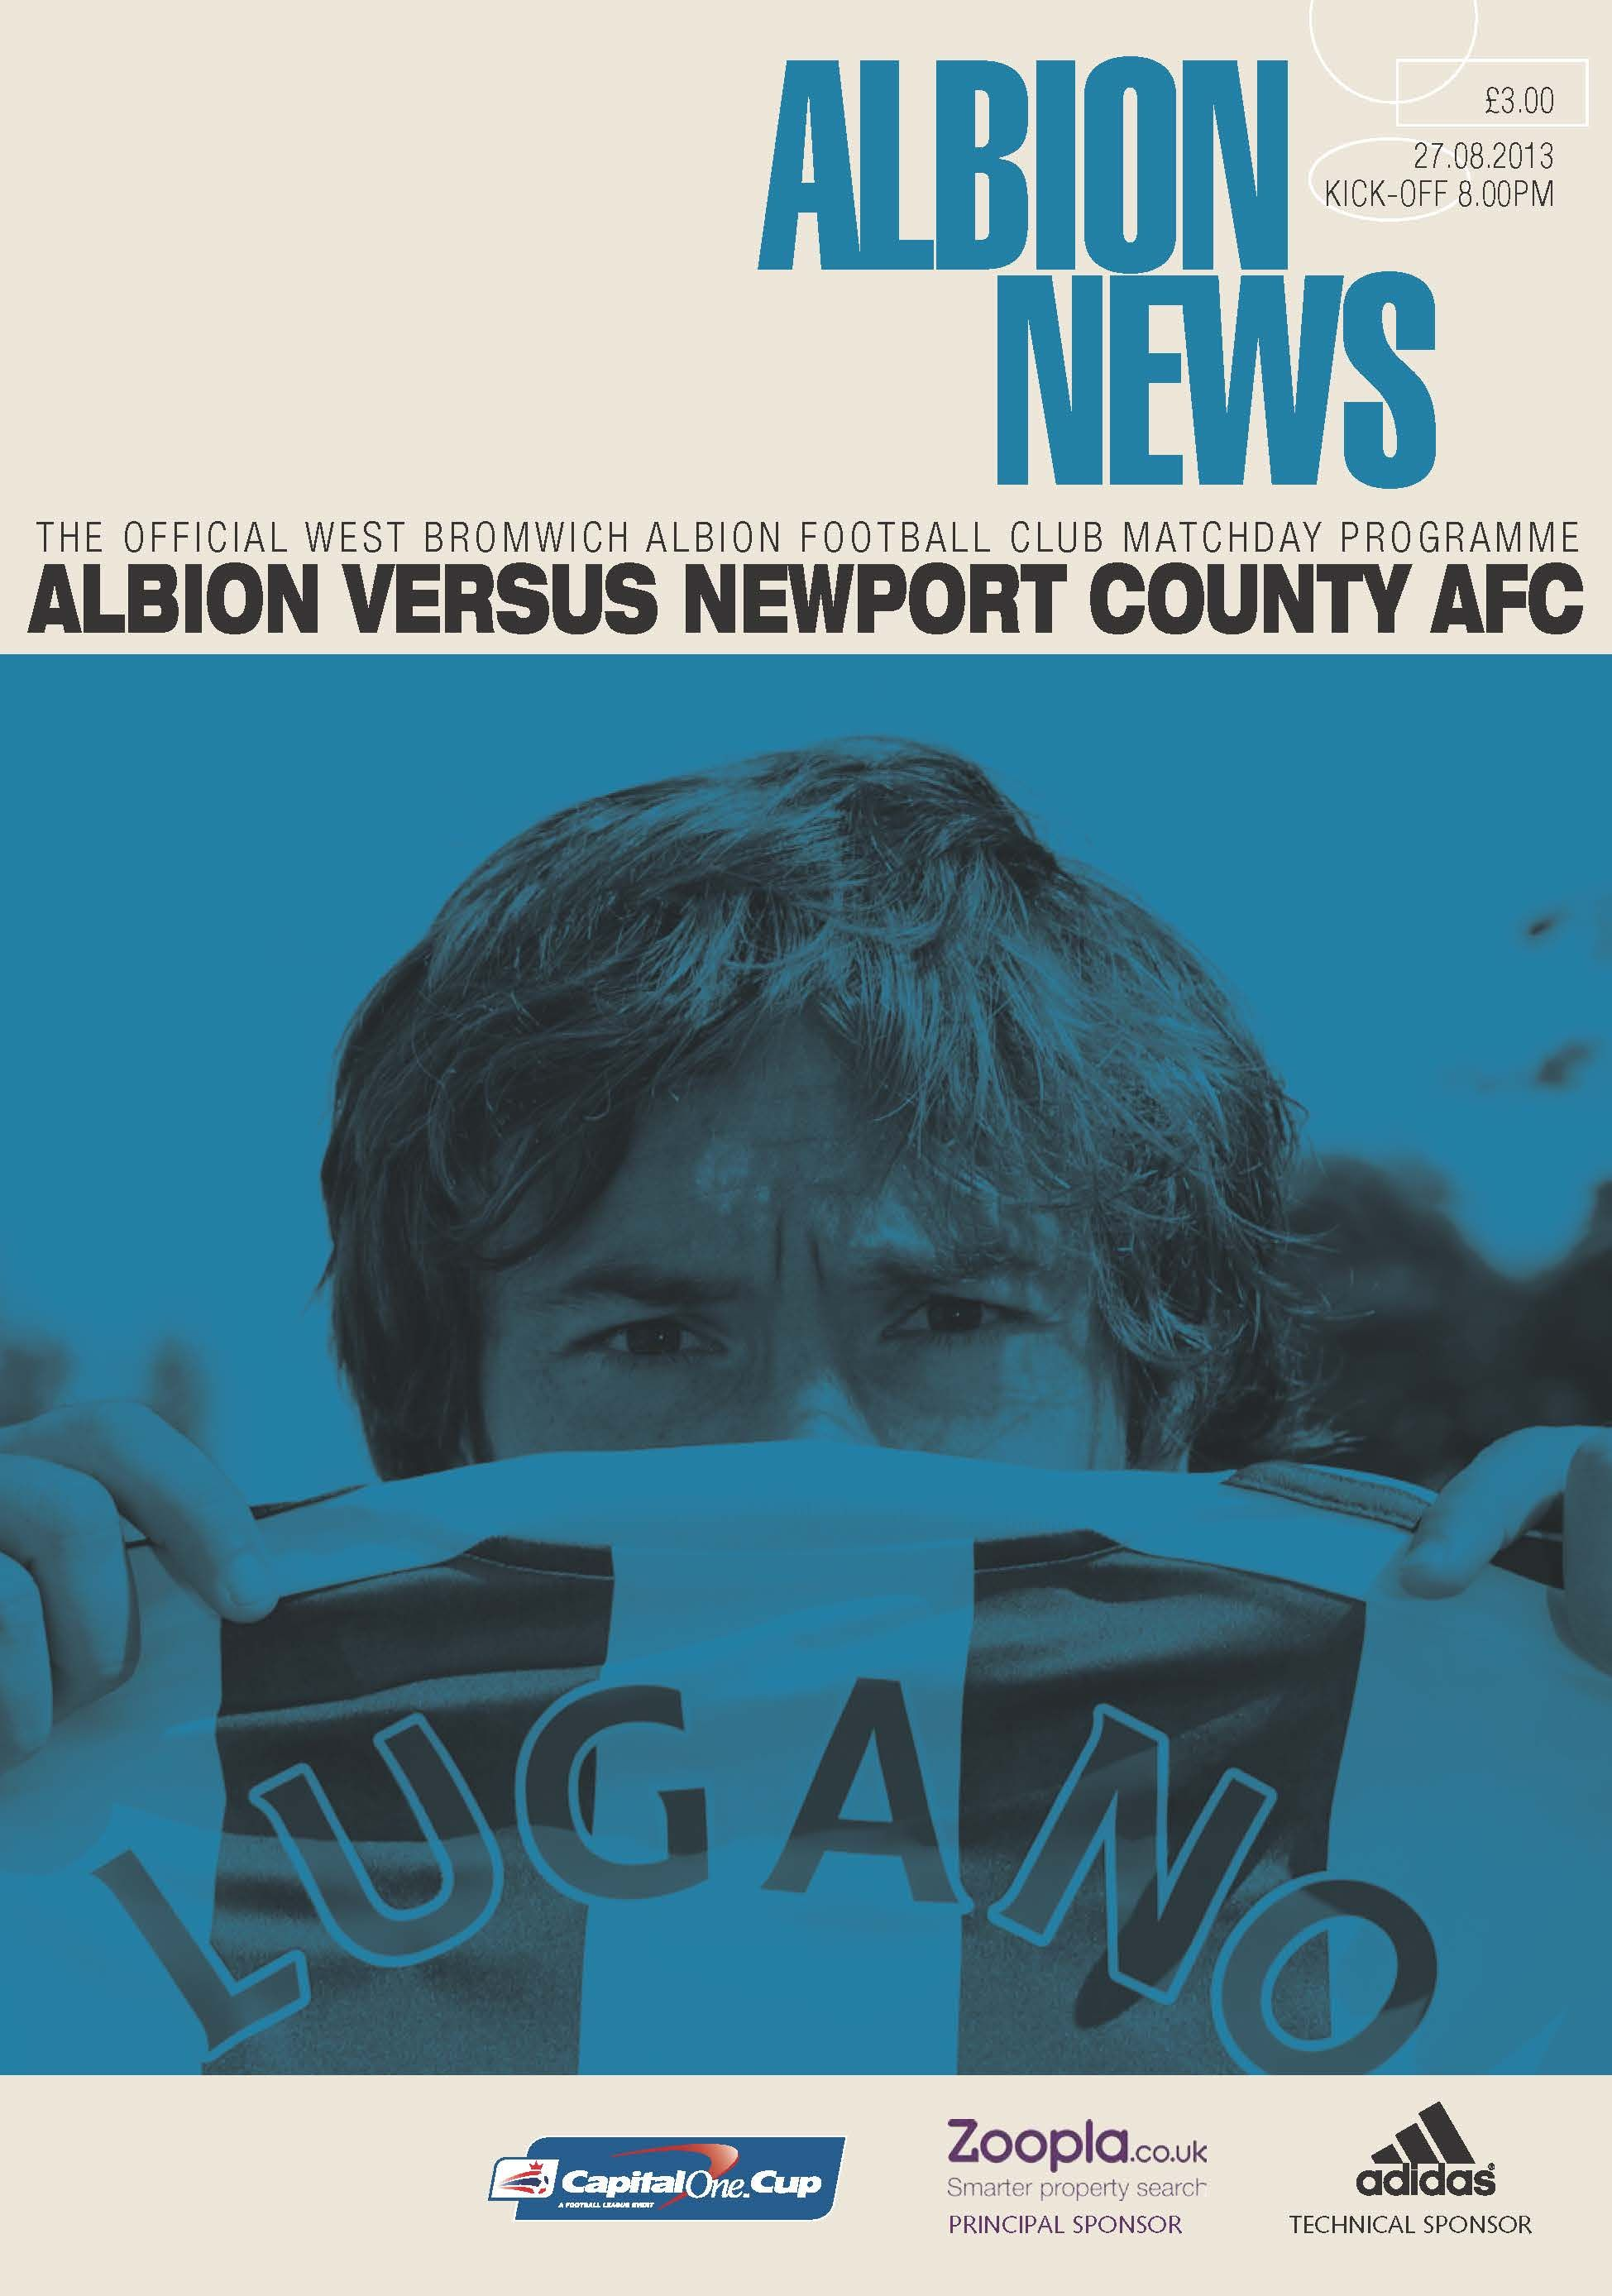 Albion News  Magazine - Buy, Subscribe, Download and Read Albion News on your iPad, iPhone, iPod Touch, Android and on the web only through Magzter